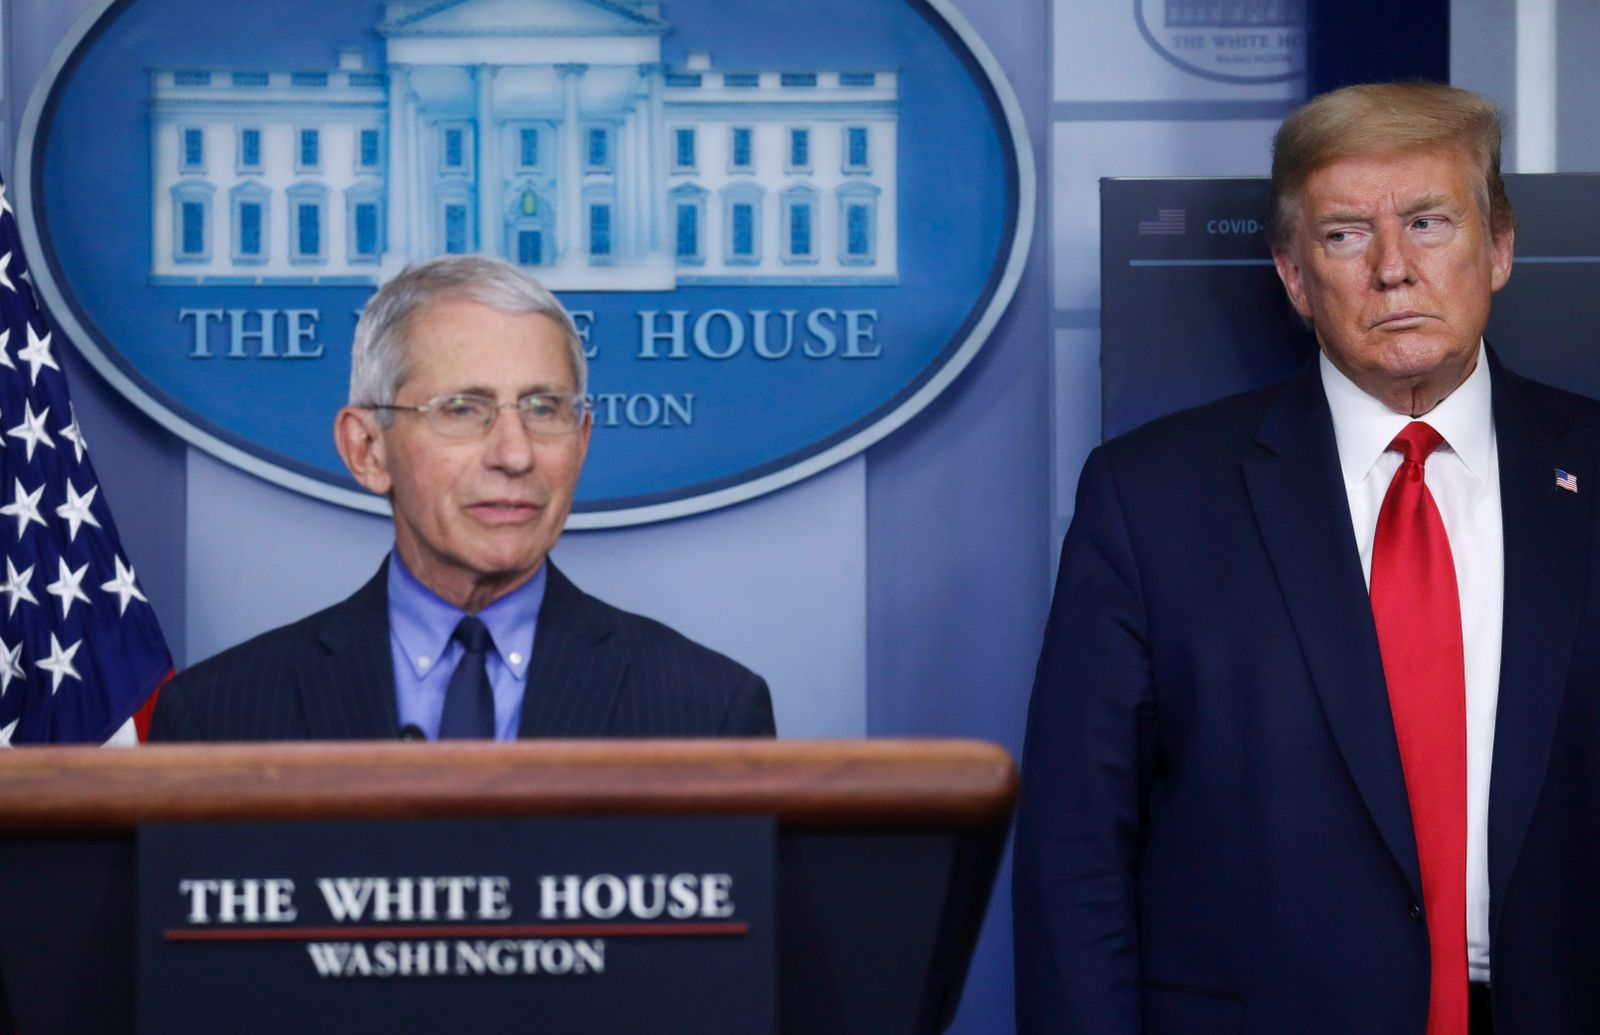 President Trump looks at Dr. Anthony Fauci as Fauci addresses the daily coronavirus response briefing at the White House in Washington